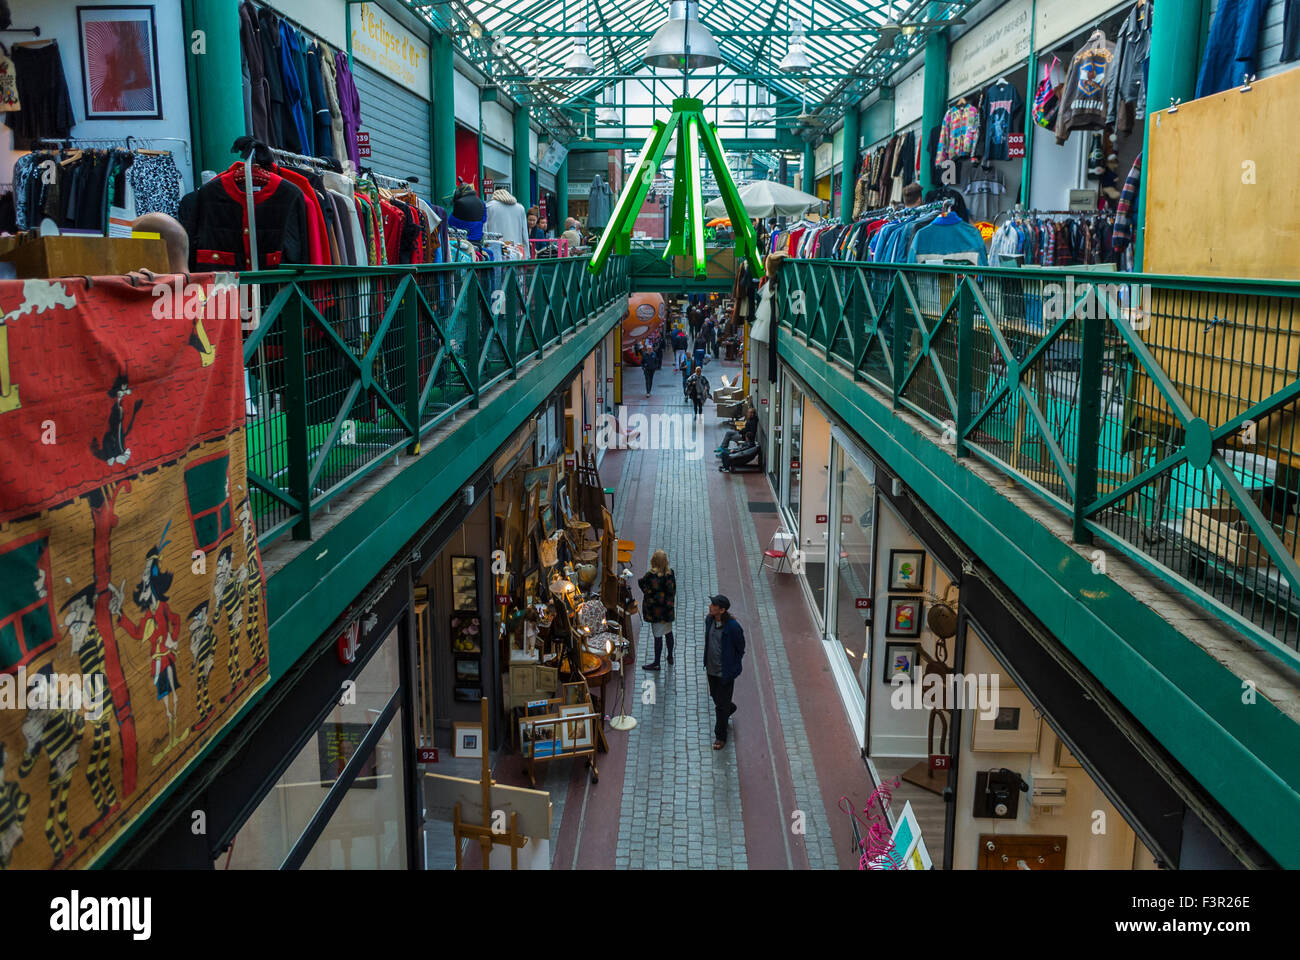 high angle view shop front in flea market stock photo royalty free image